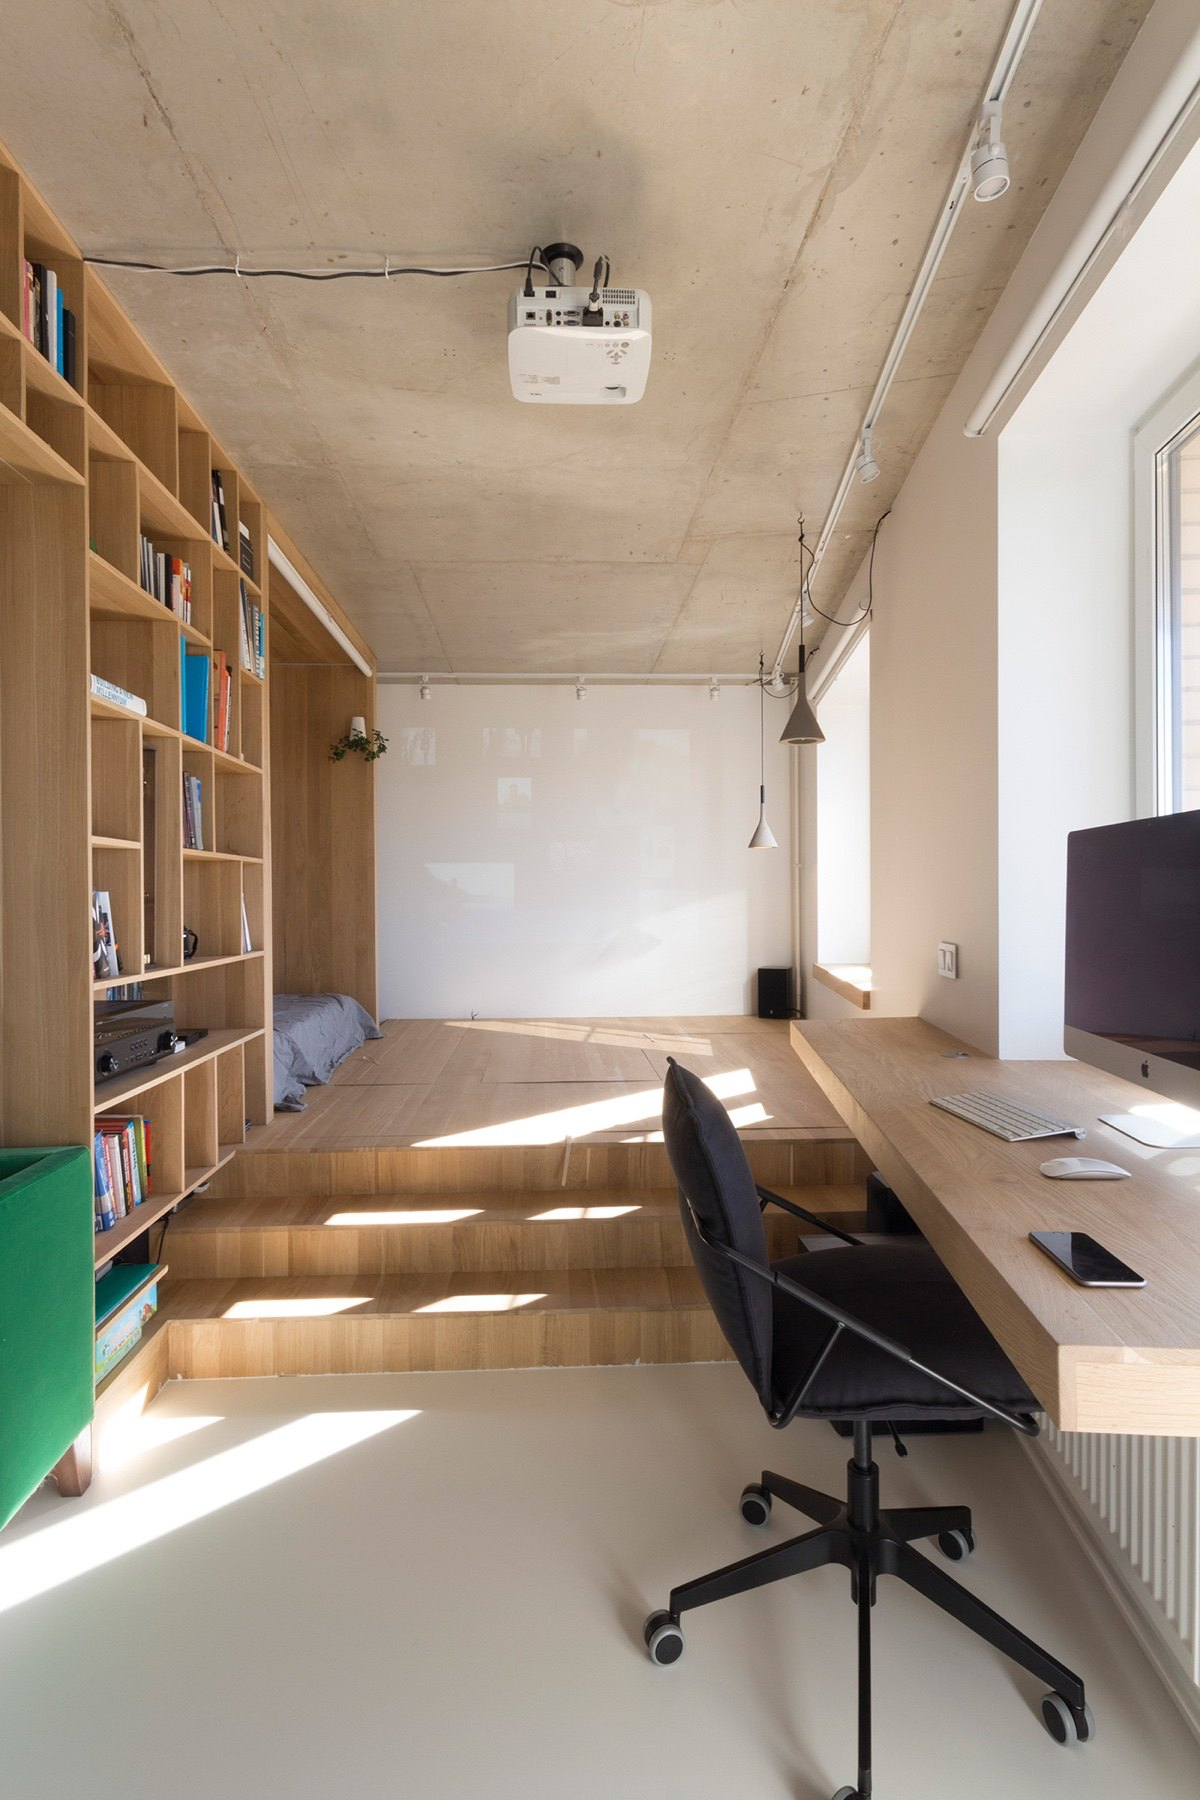 Super small studio apartment under 50 square meters for Apartment japan design